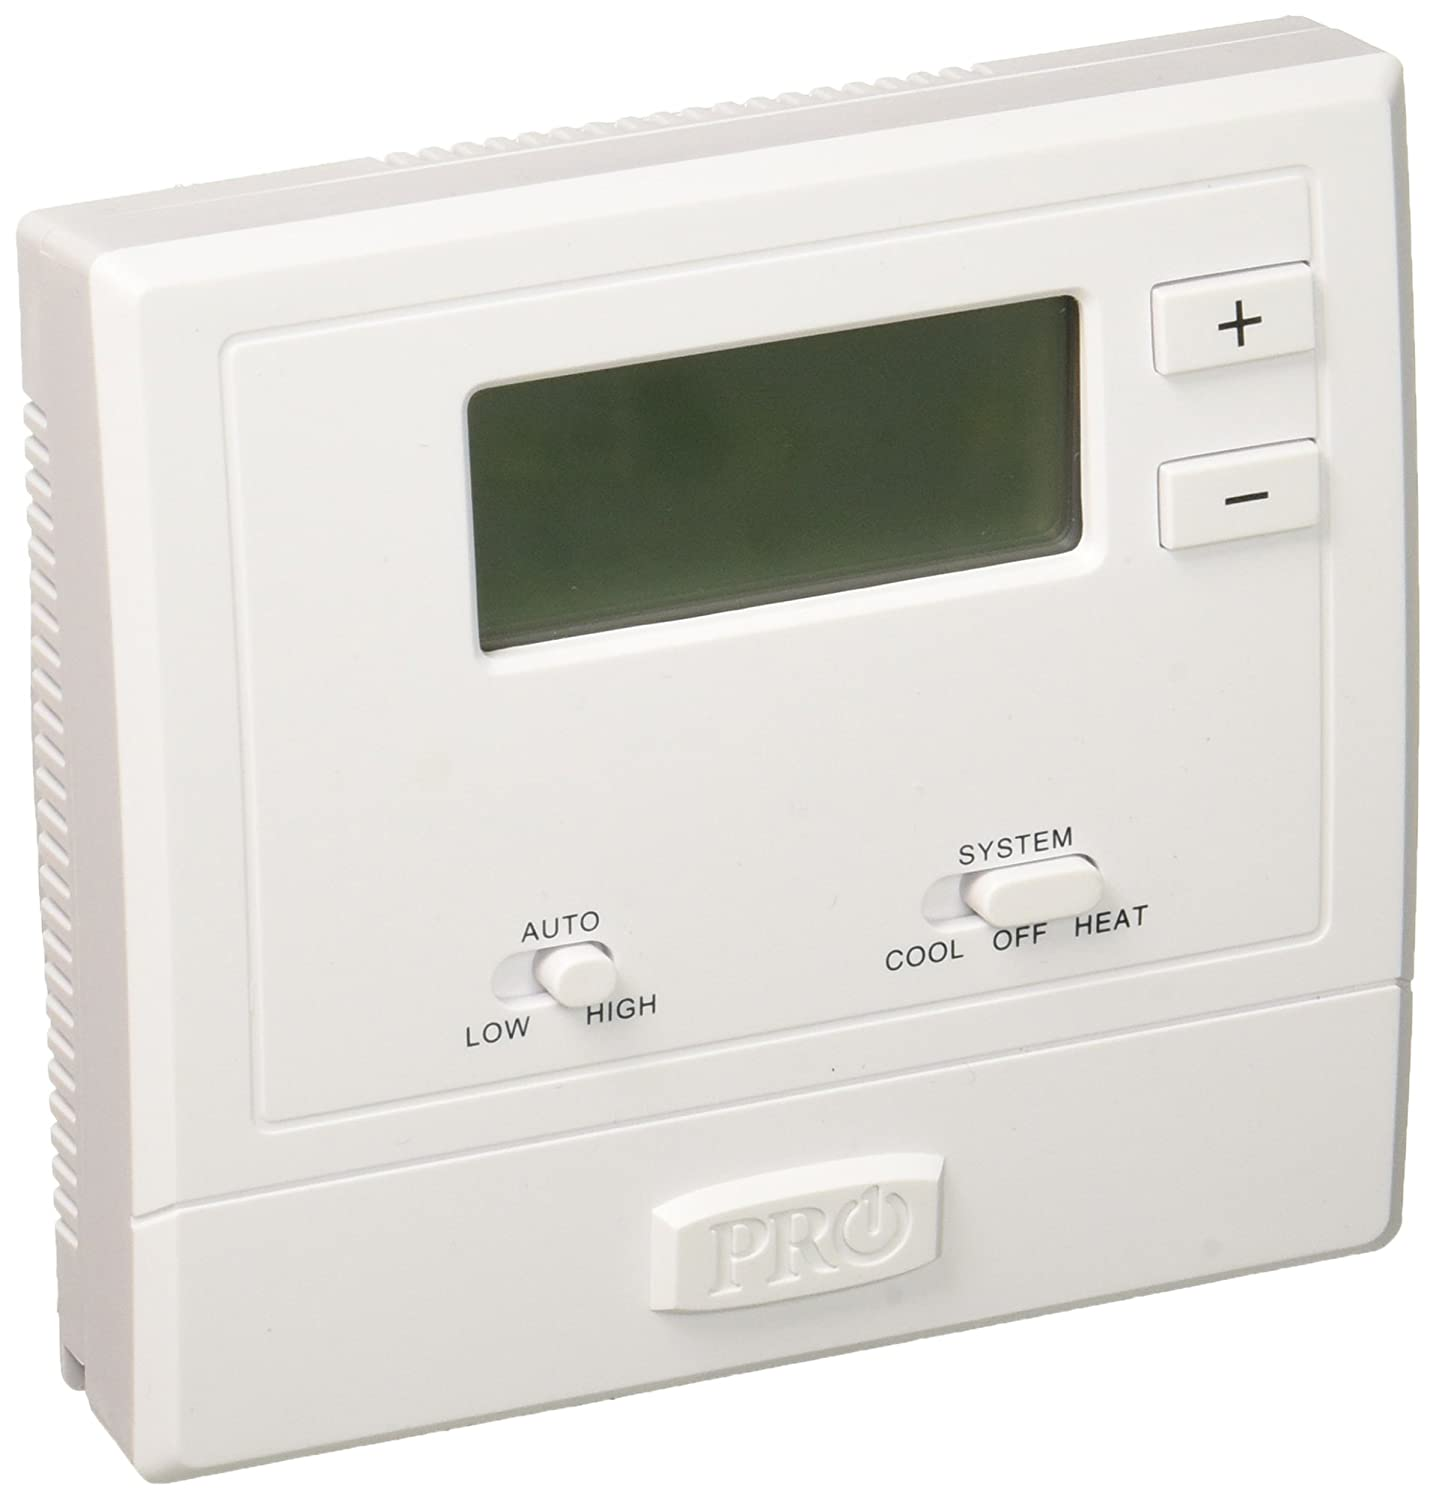 Pro1 Iaq T631w 2 Touchscreen Non Programmable Electronic Thermostat